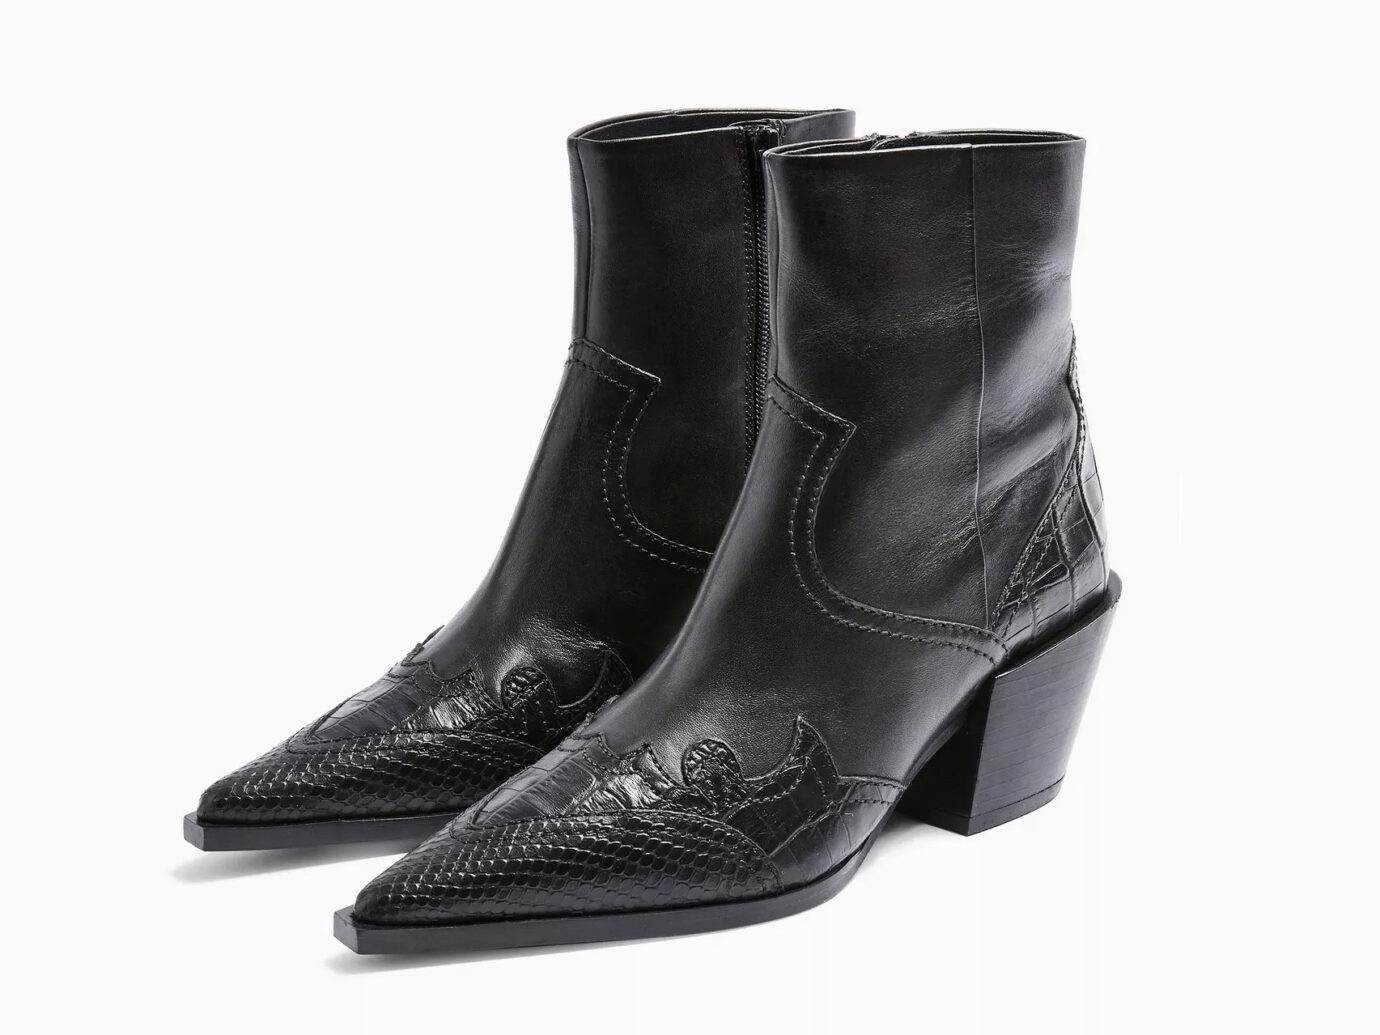 MISSOURI Black Leather Western Boots